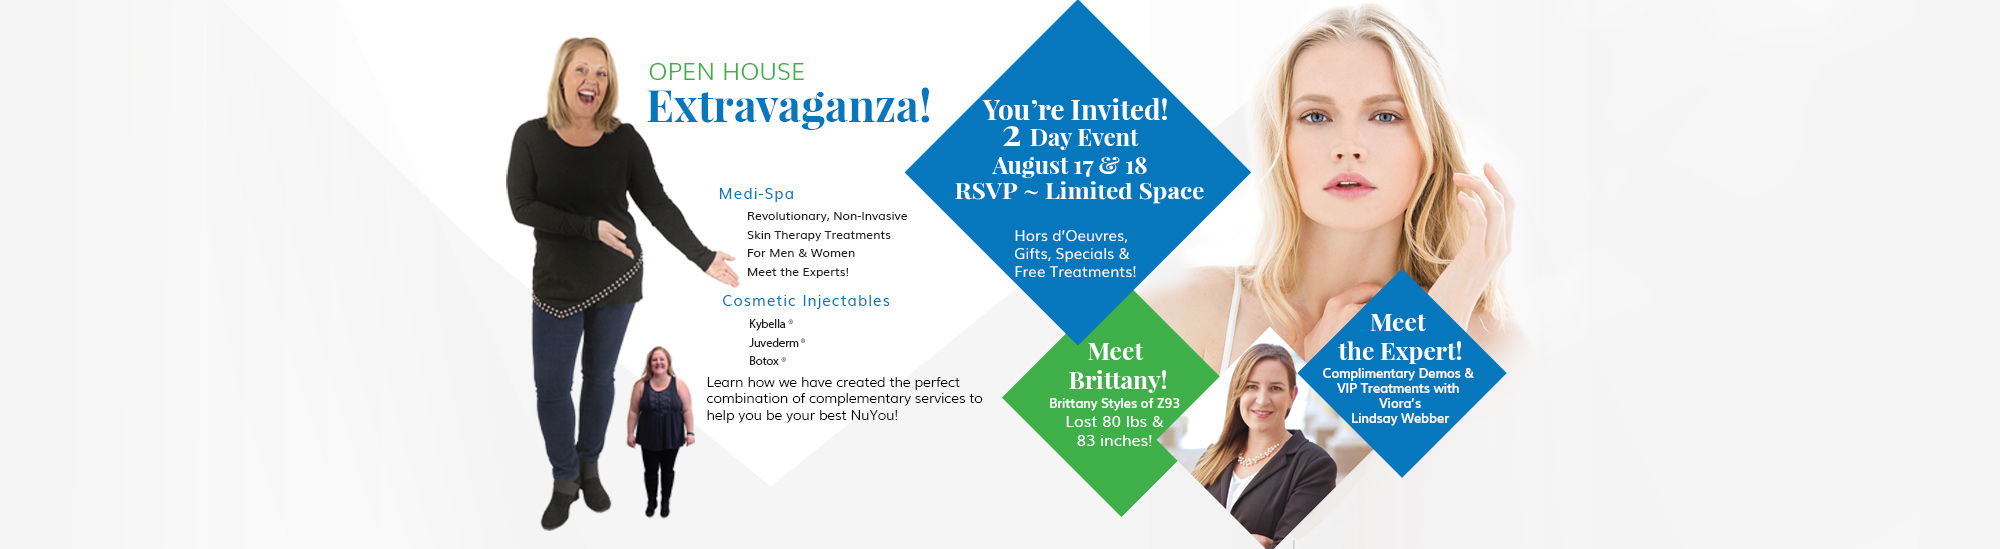 NuYou Open House Extravaganza! RSVP for your time on August 17 and 18. Call 6087851145